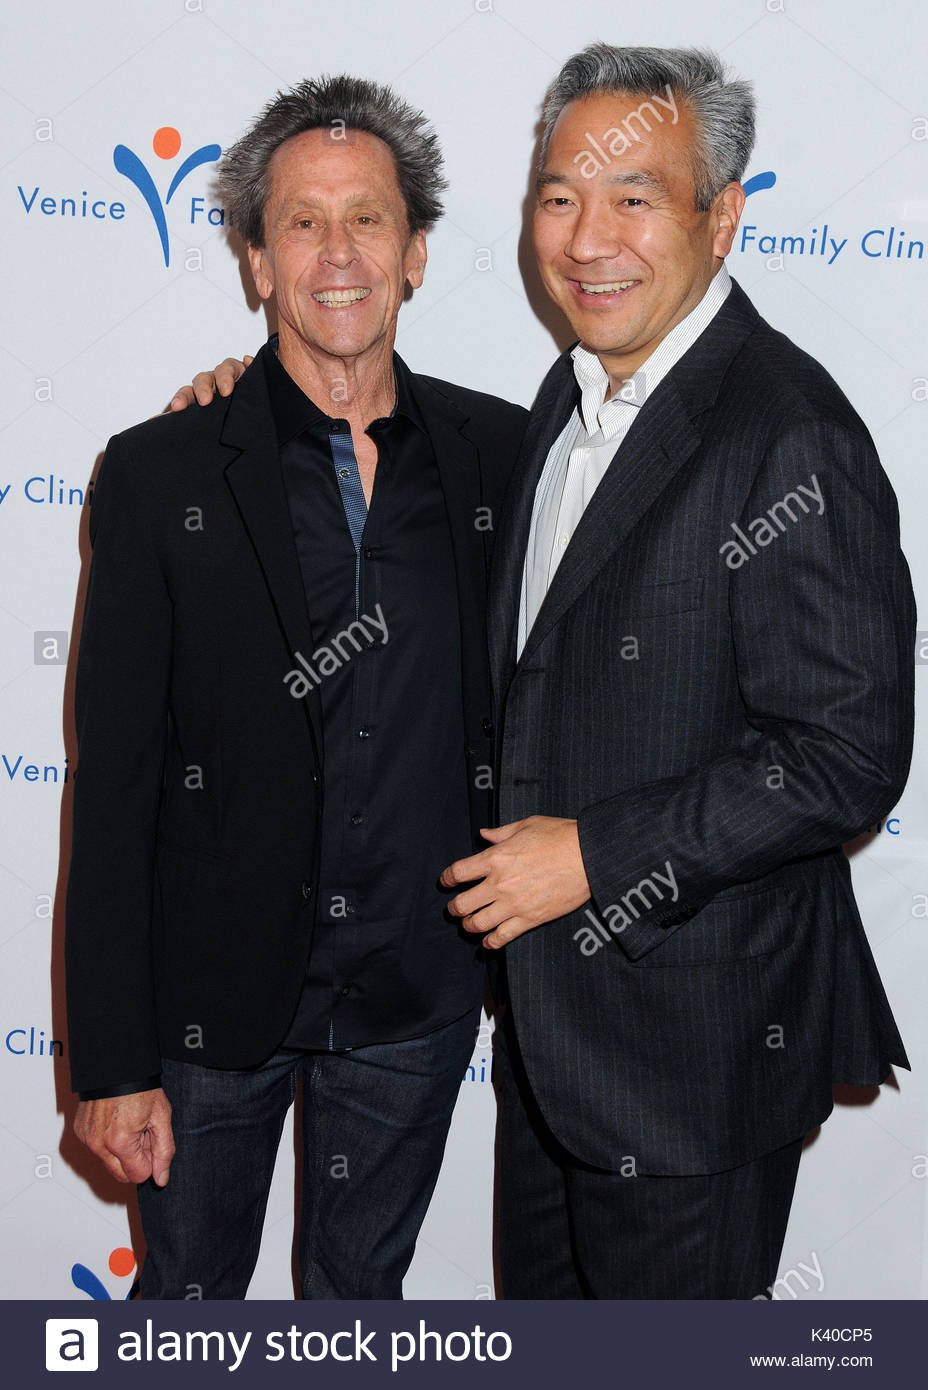 venice family clinic 2015 silver circle gala held at the beverly wilshire hotel in beverly hills california on march 9 2015 - Silver Hotel 2015